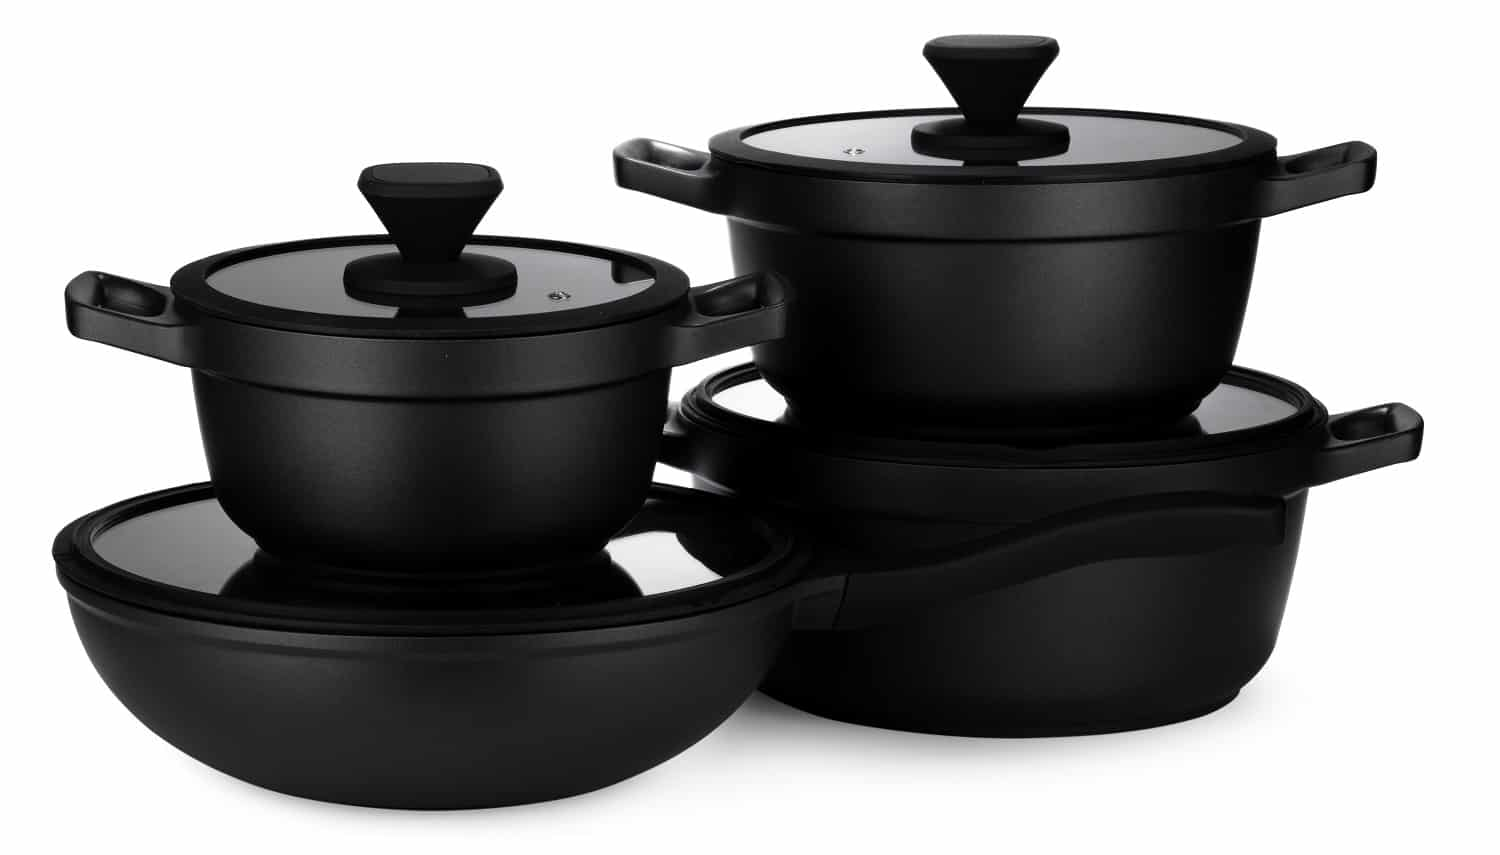 New set of black cookware isolated on white background